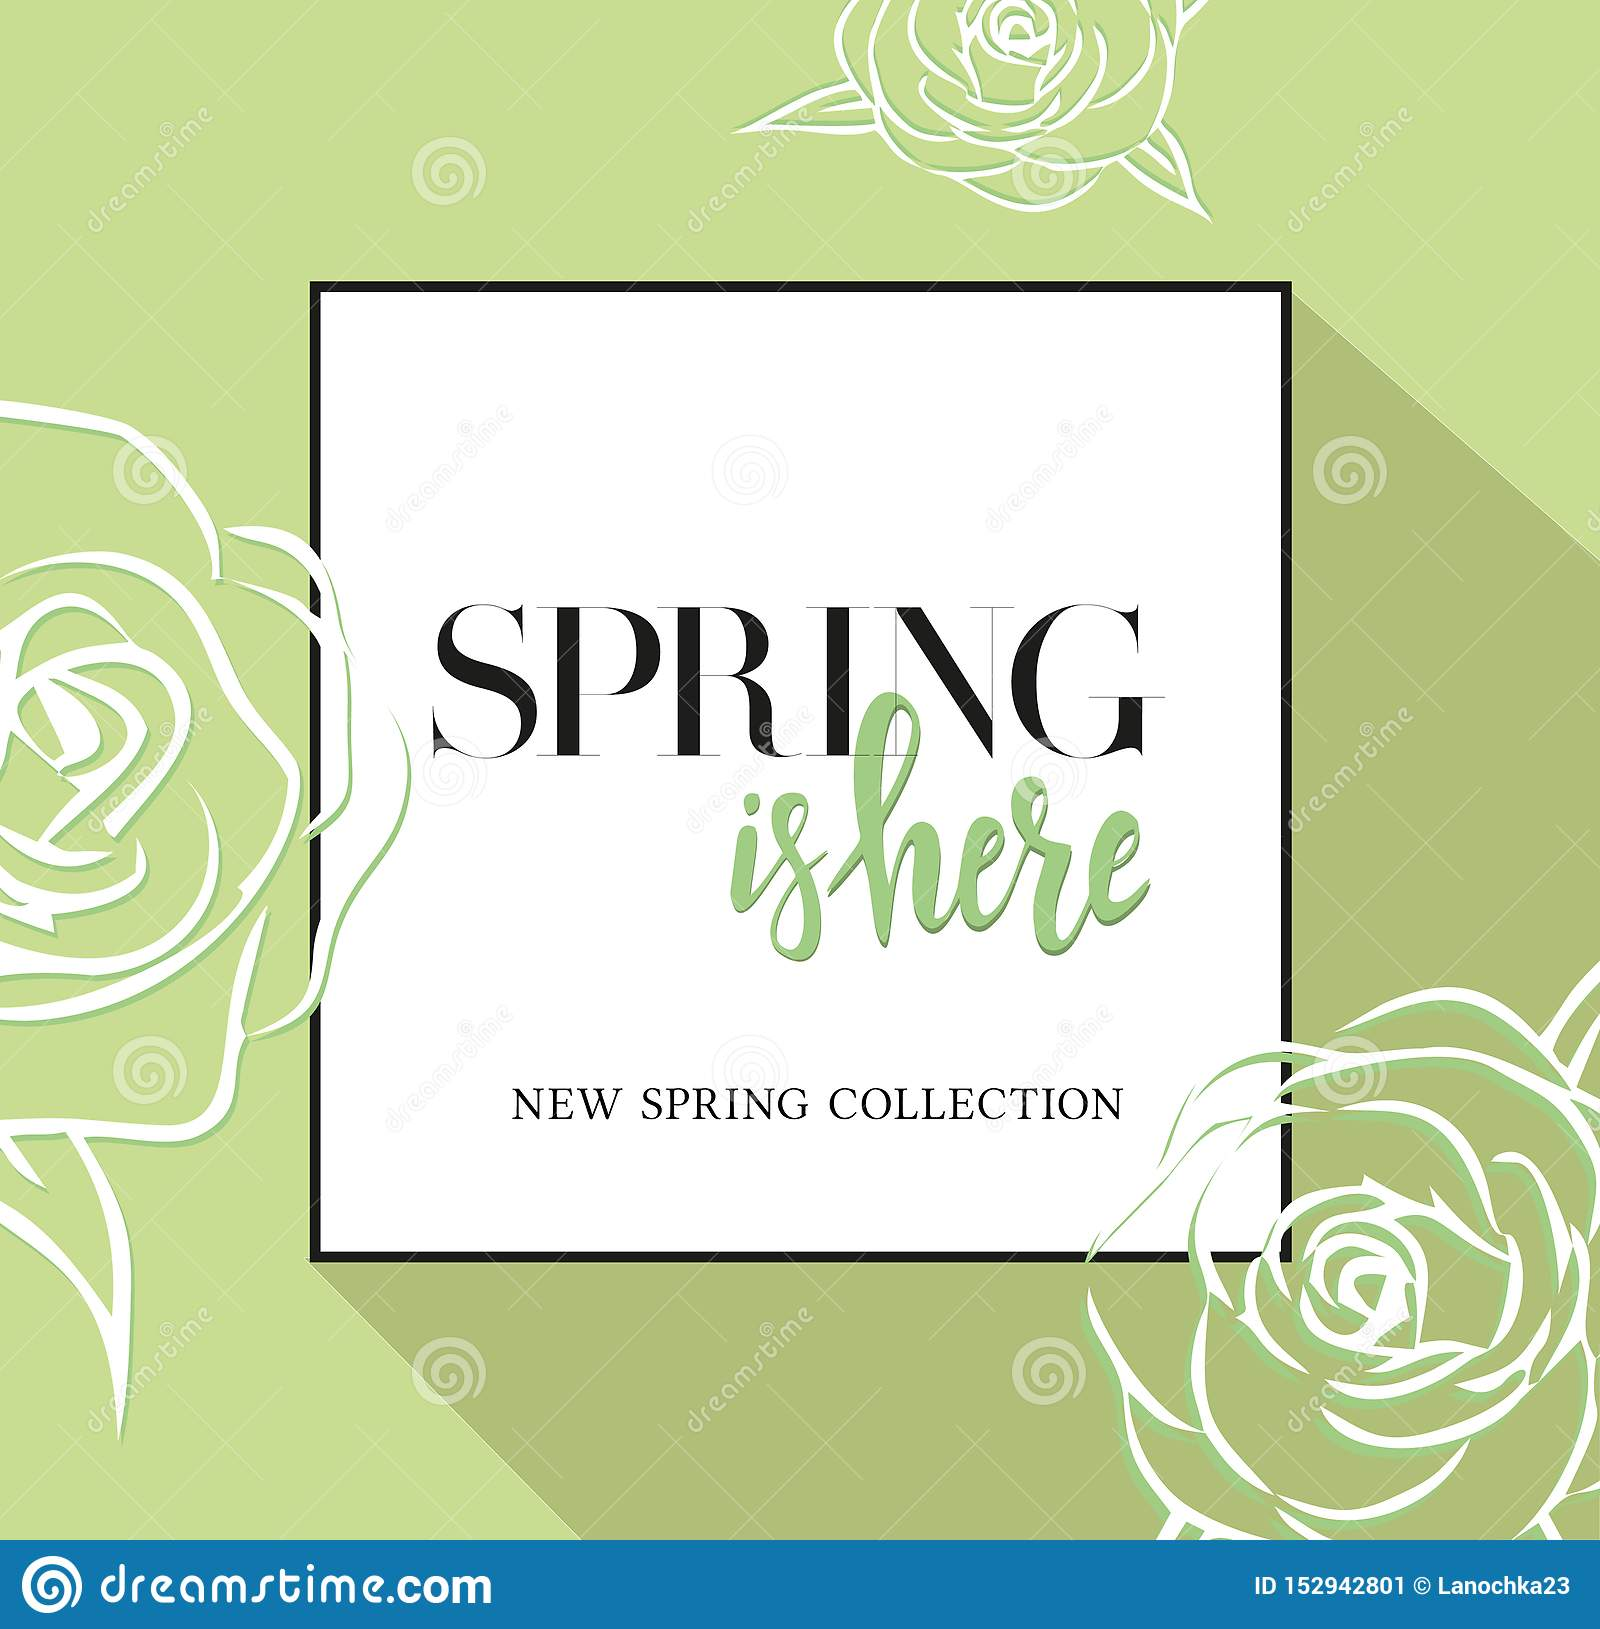 Design banner with lettering spring is here logo. Greenc ard for spring season with black frame and rose. Promotion offer with